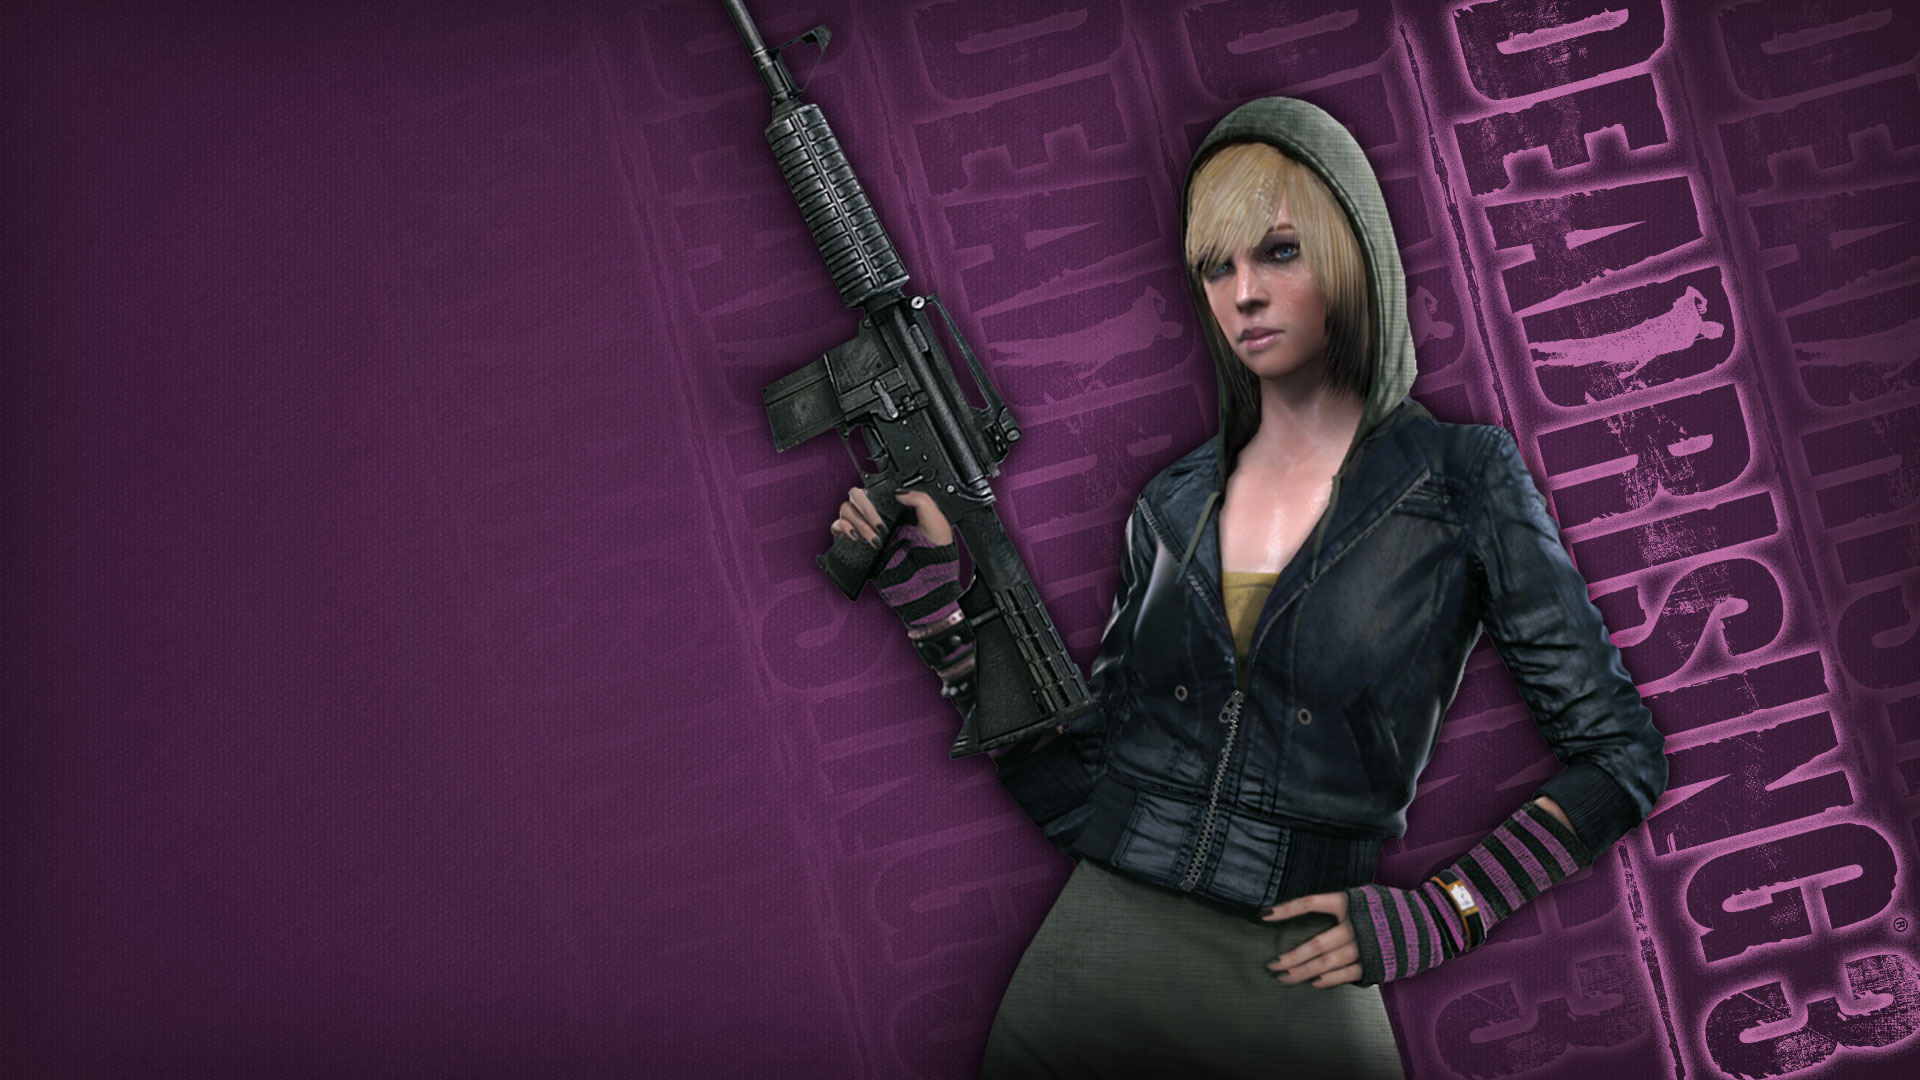 Steam card exchange showcase dead rising 3 card 2 of 9artwork annie malvernweather Images